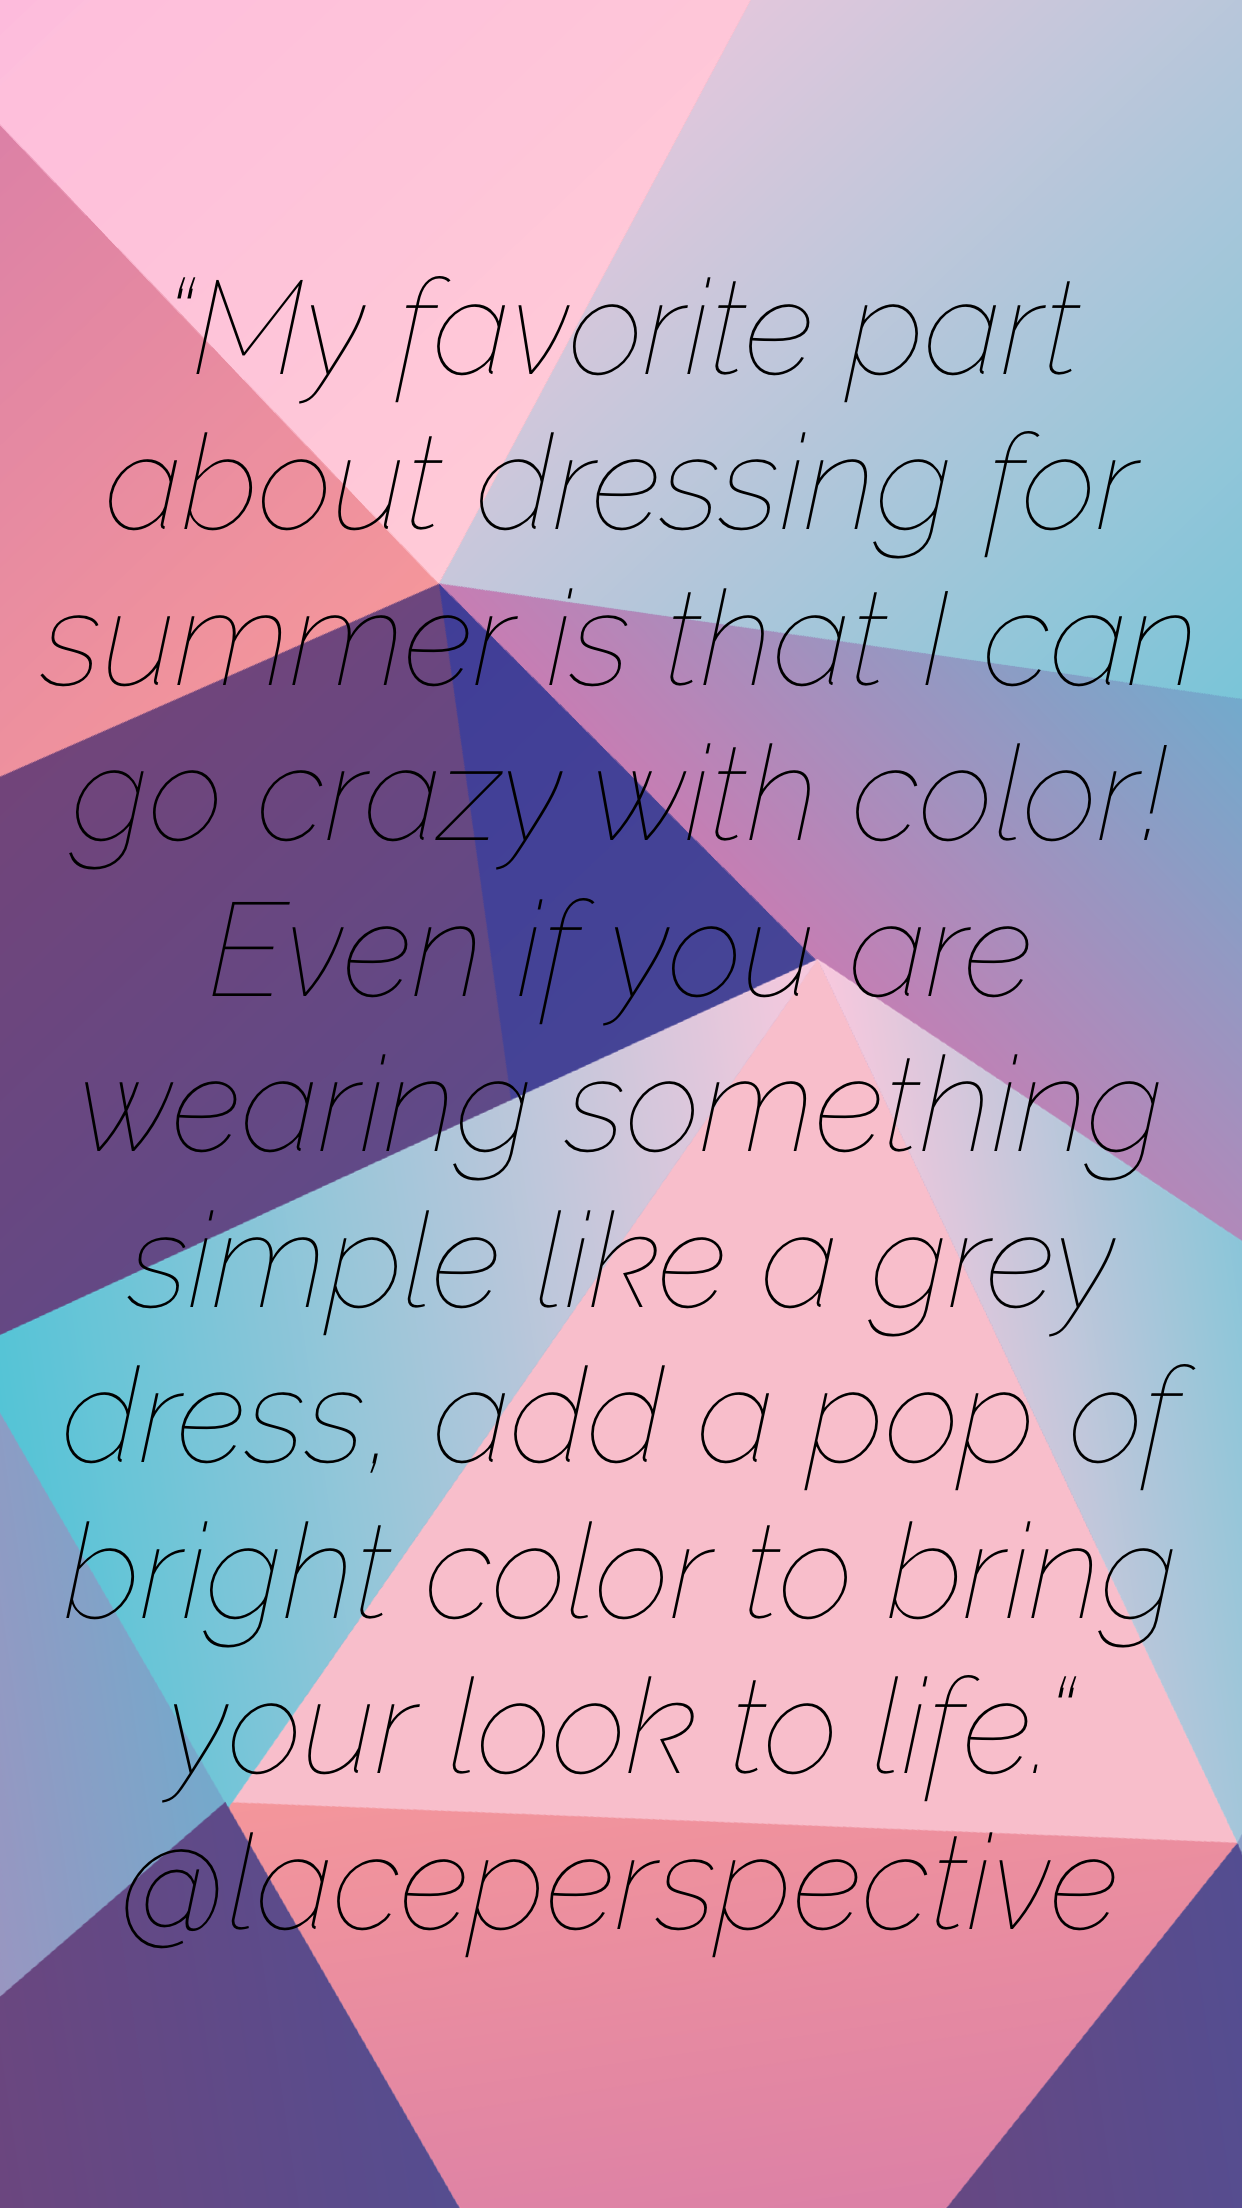 """My favorite part about dressing for summer is that I can go crazy with color! Even if you are wearing something simple like a grey dress, add a pop of bright color to bring your look to life."""